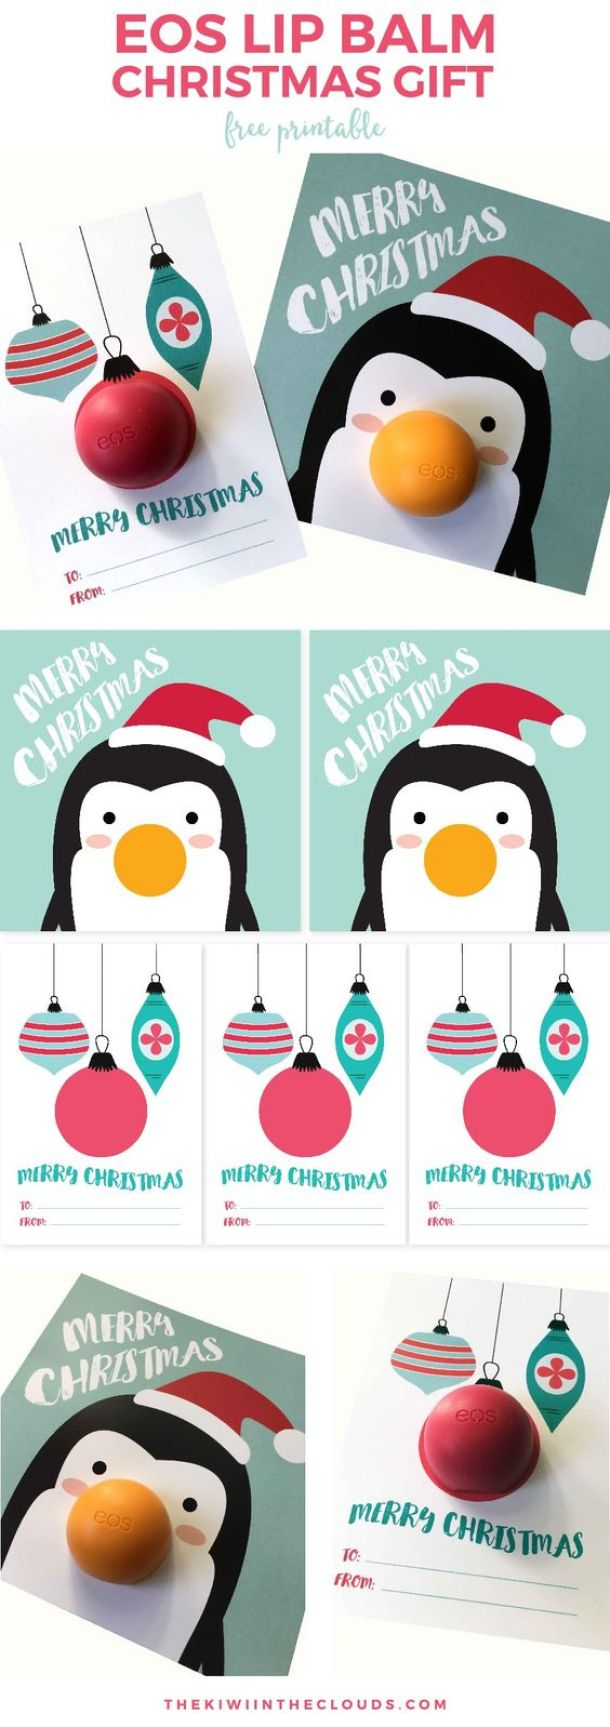 Darling Penguin and Ornaments EOS LIP BALM Christmas Gift FREE Printable Cards - just attach the lip balm for the cutest quick Christmas gift! | Kiwi in the Clouds - The BEST Christmas and Holiday FREE Printables - Gift Tags - Gift Card Holders - Christmas Greeting Cards and more FREE Downloadable Printables for the Holiday Seasons